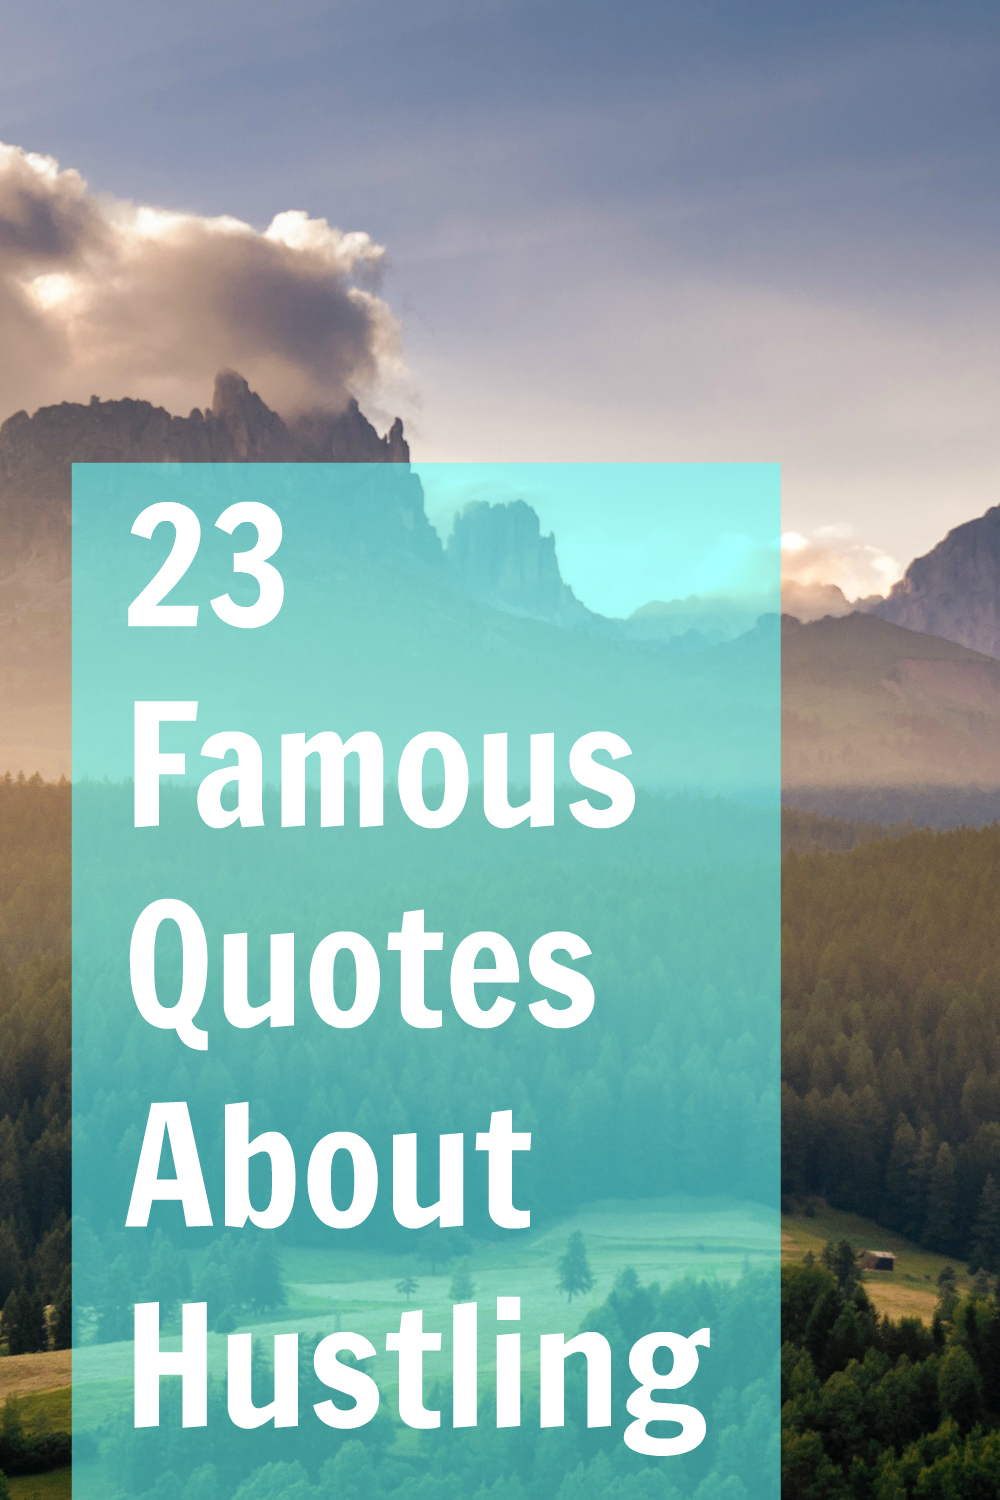 ab565002d9 Hustle Quotes  The 23 Most Famous Quotes About Hustling